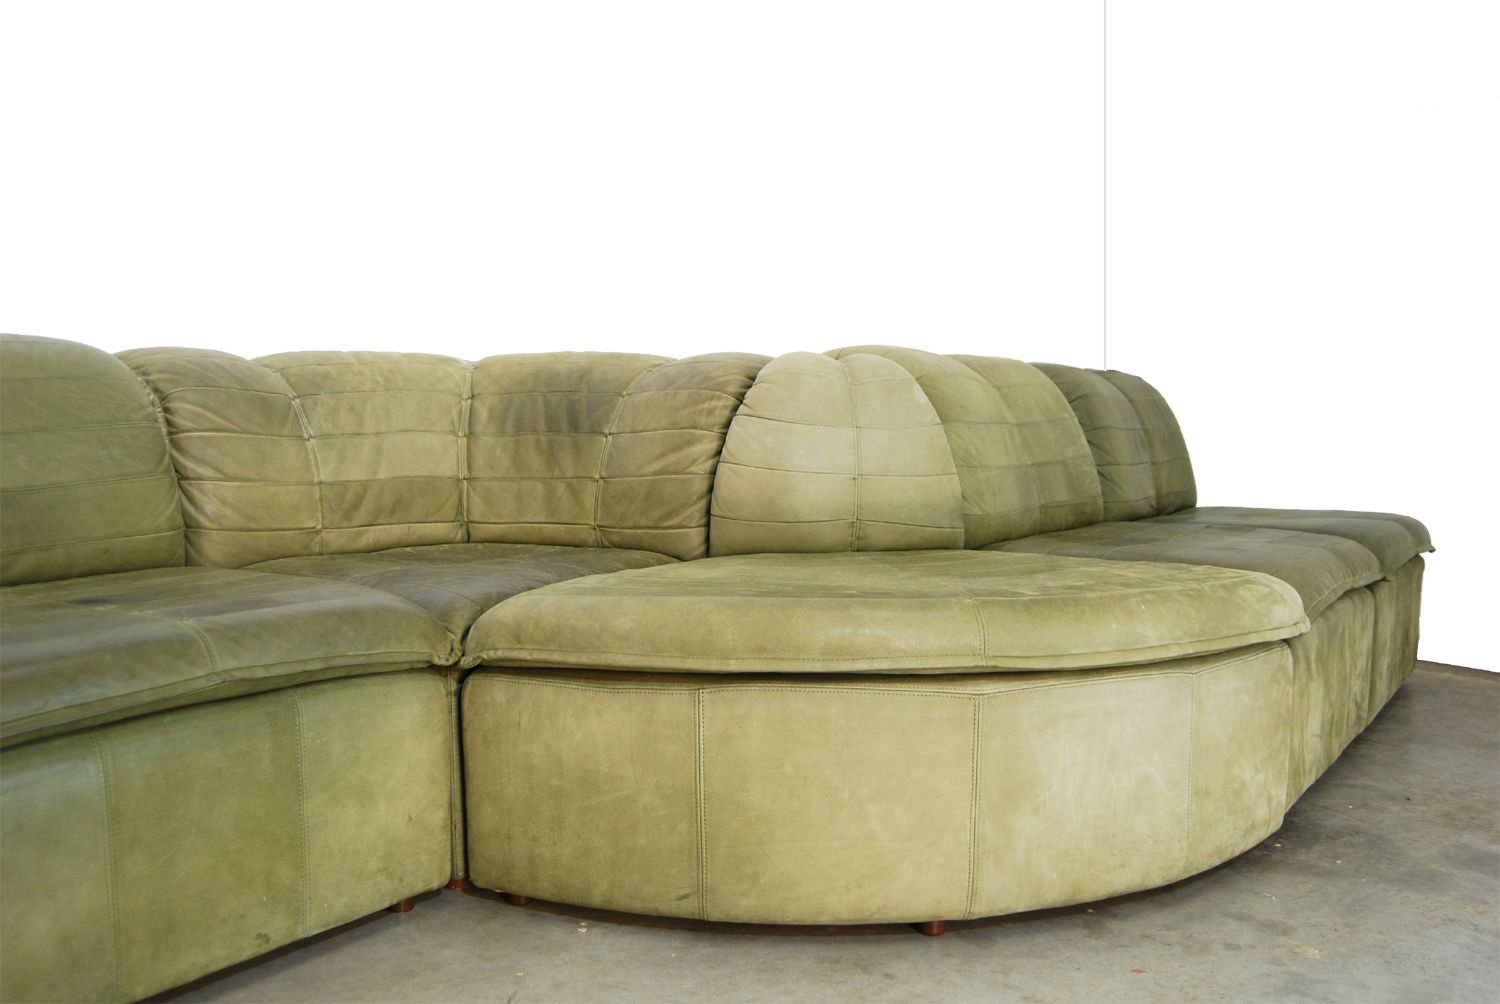 nubuck leather sofa kivik cover review modular from laauser 1970s for sale